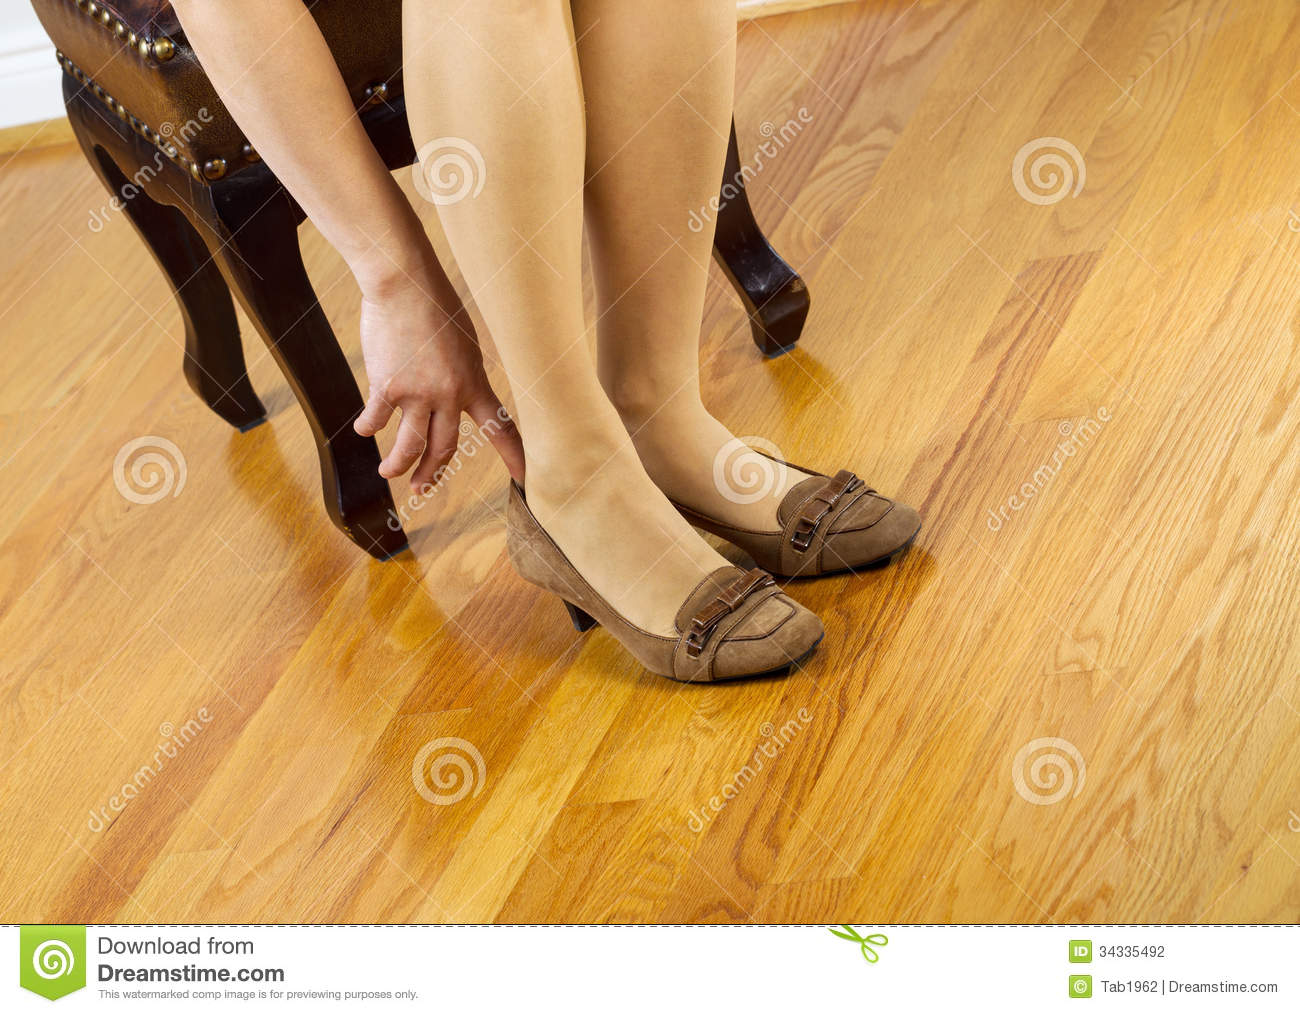 Woman In Stockings Putting On Shoes Stock Photo